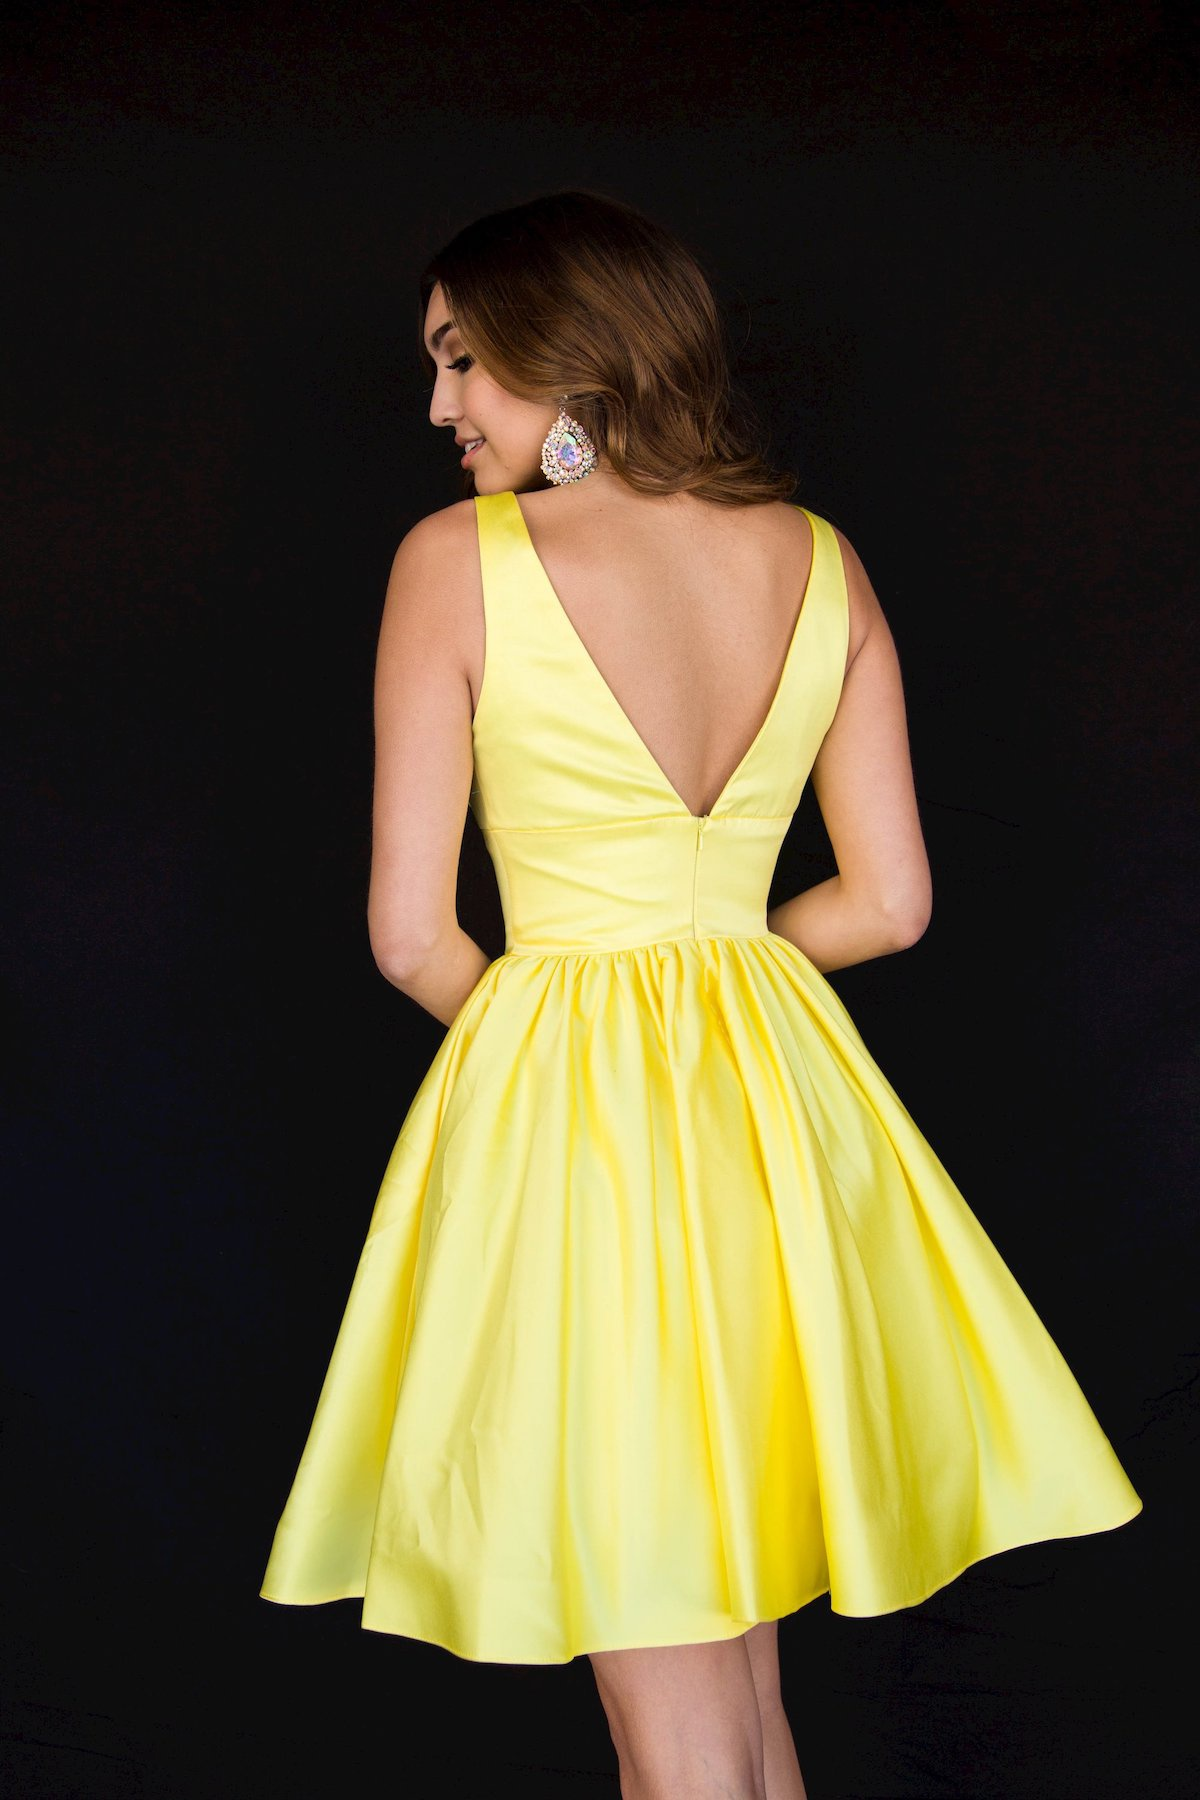 Style 6023 Vienna Yellow Size 18 Backless Plus Size Tall Height Cocktail Dress on Queenly